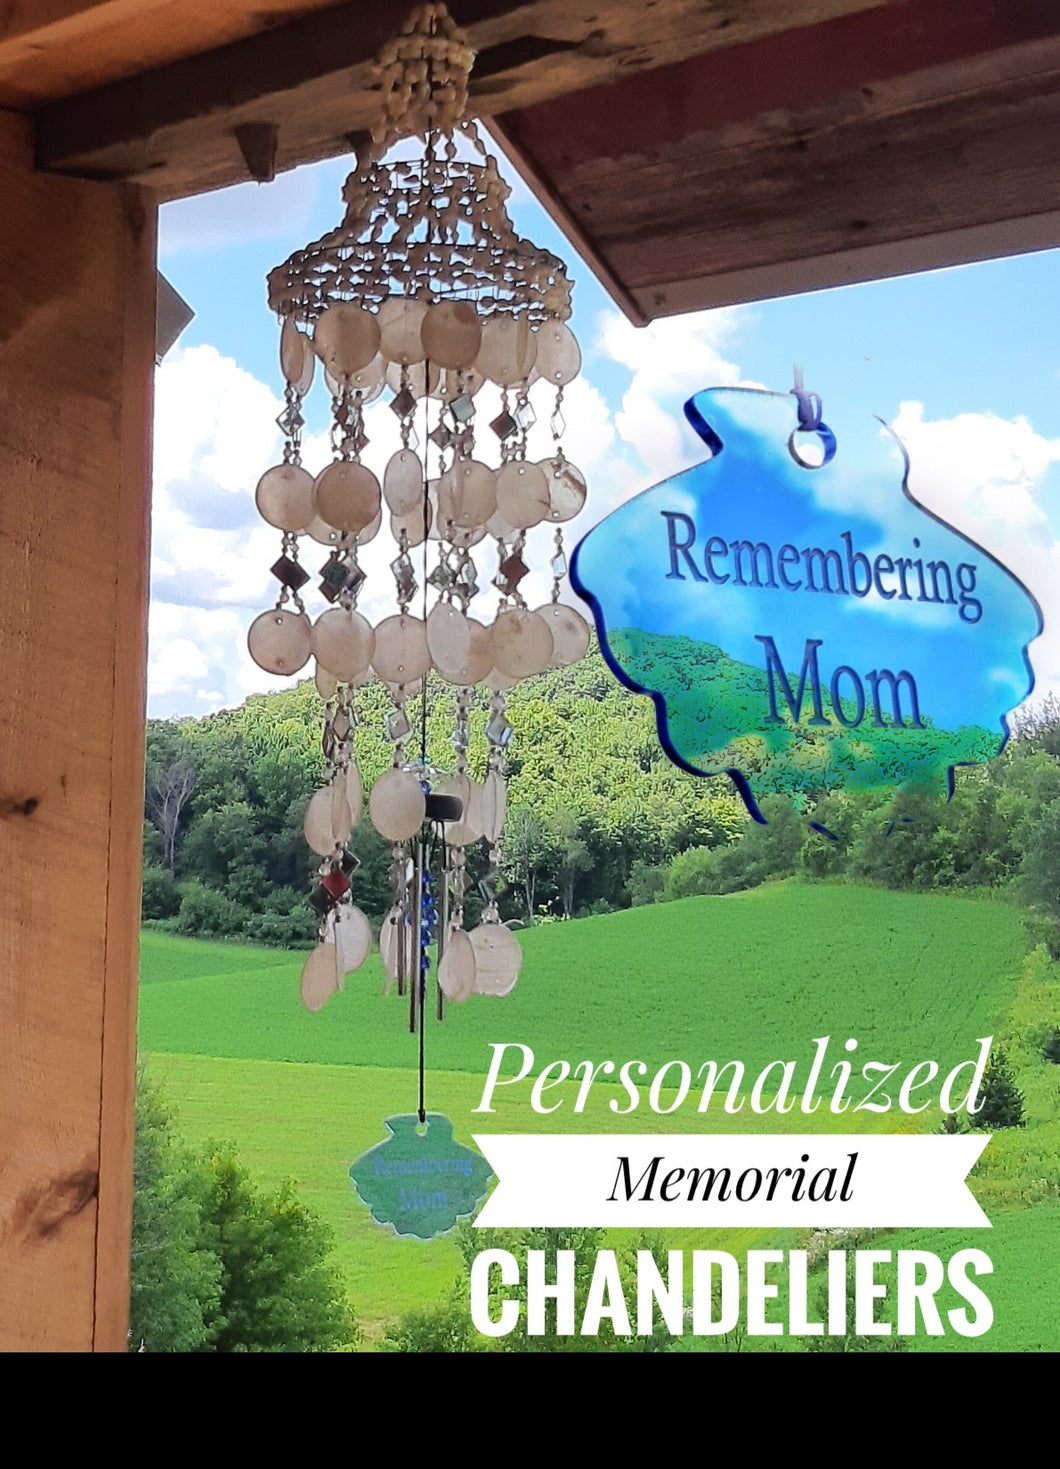 Memorial Sea Shell Chandelier 27 inch Wind Chime Sympathy Gift After Loss In Memory by Weathered Raindrop